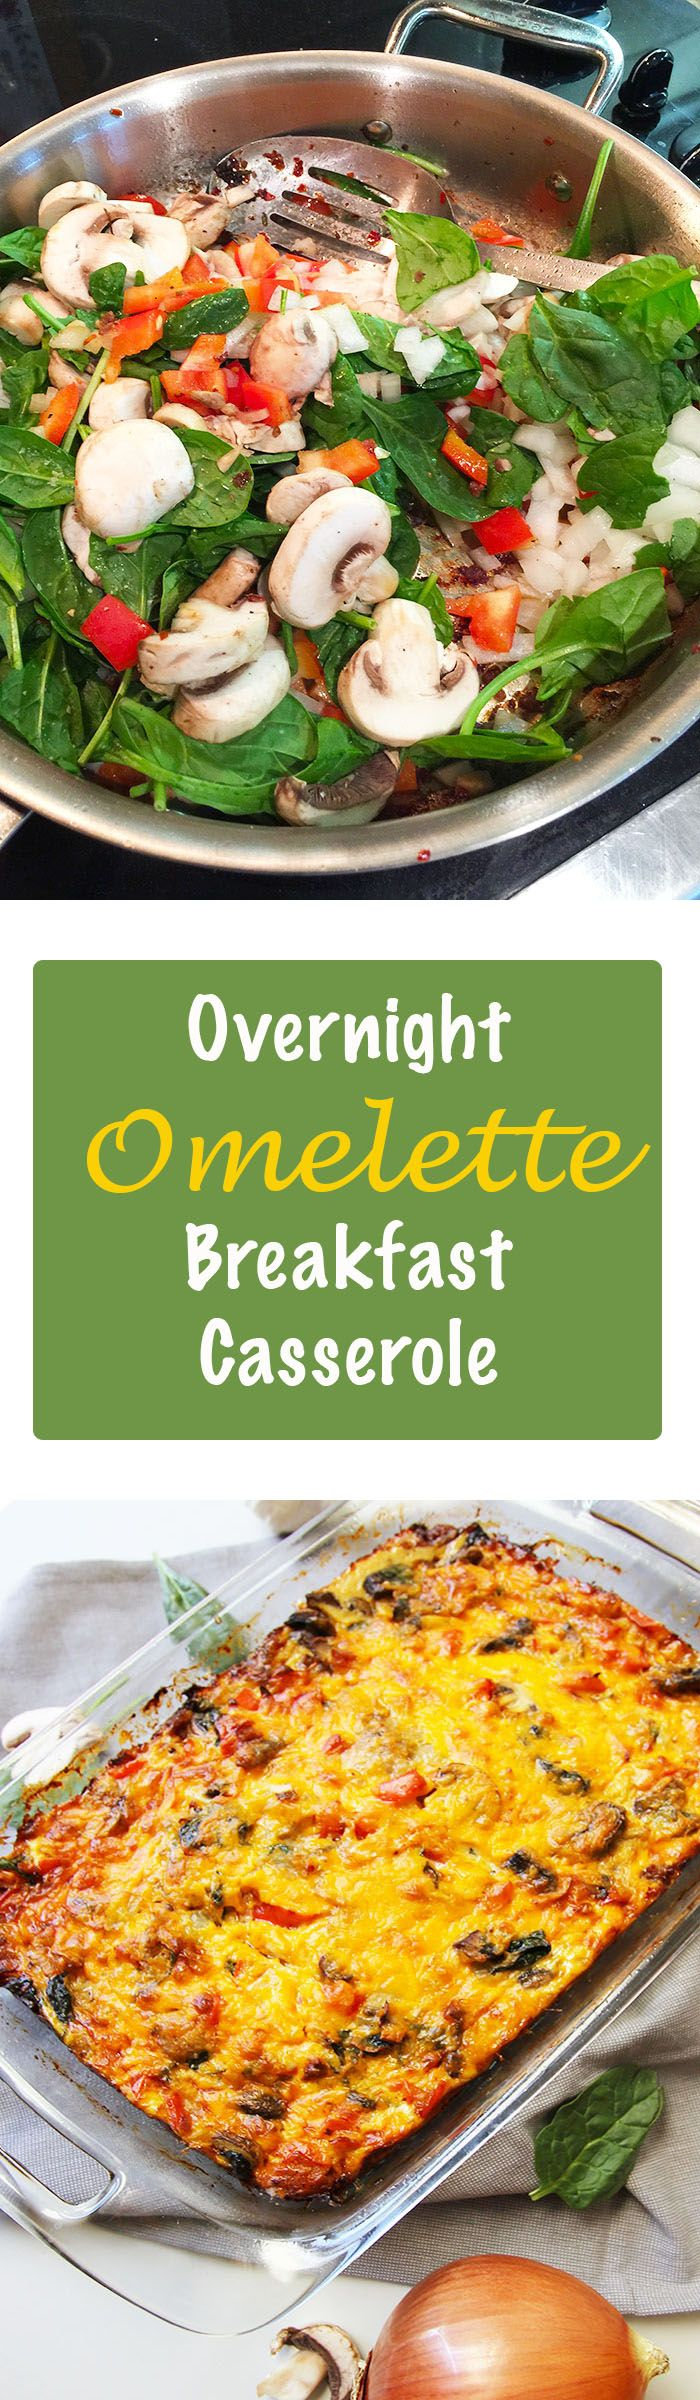 A shortcut to making omelettes for a group. Loaded with meat, cheese, eggs, and veggies, this breakfast casserole is both delicious and satisfying!